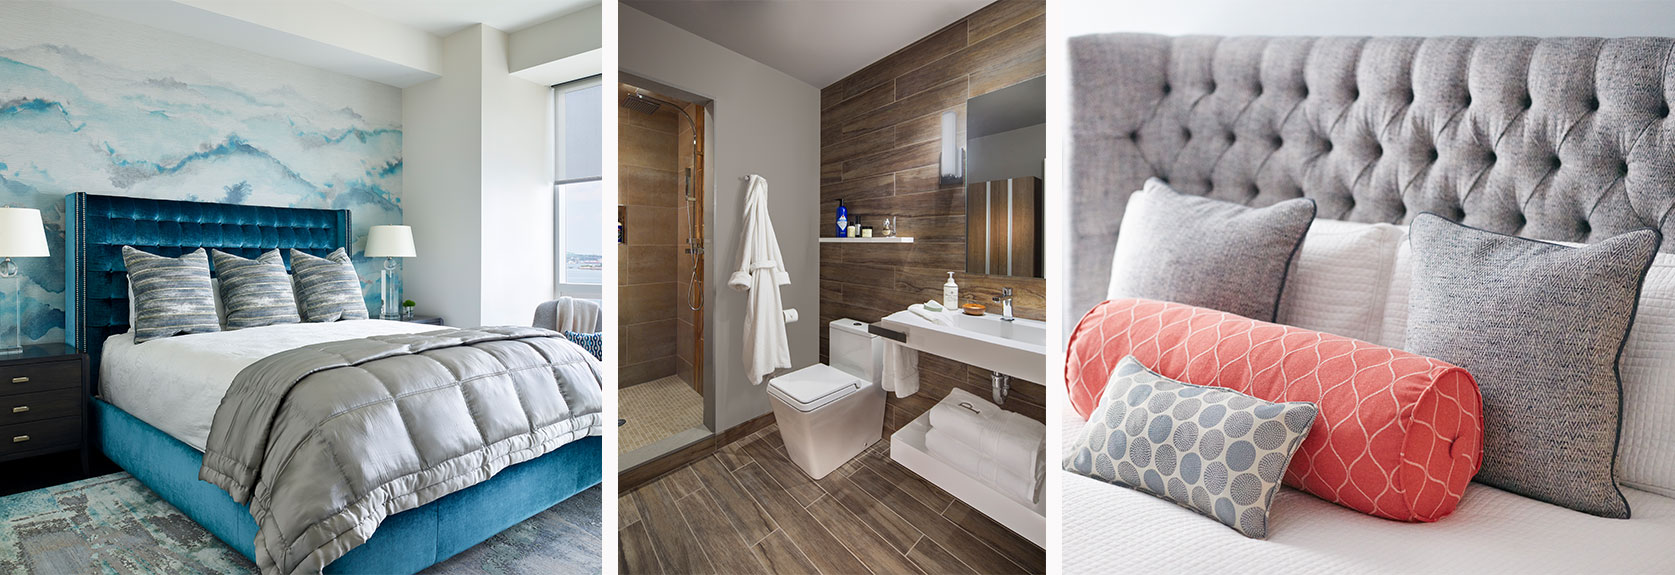 Bedroom and bathroom designs by Interiology Design Co.